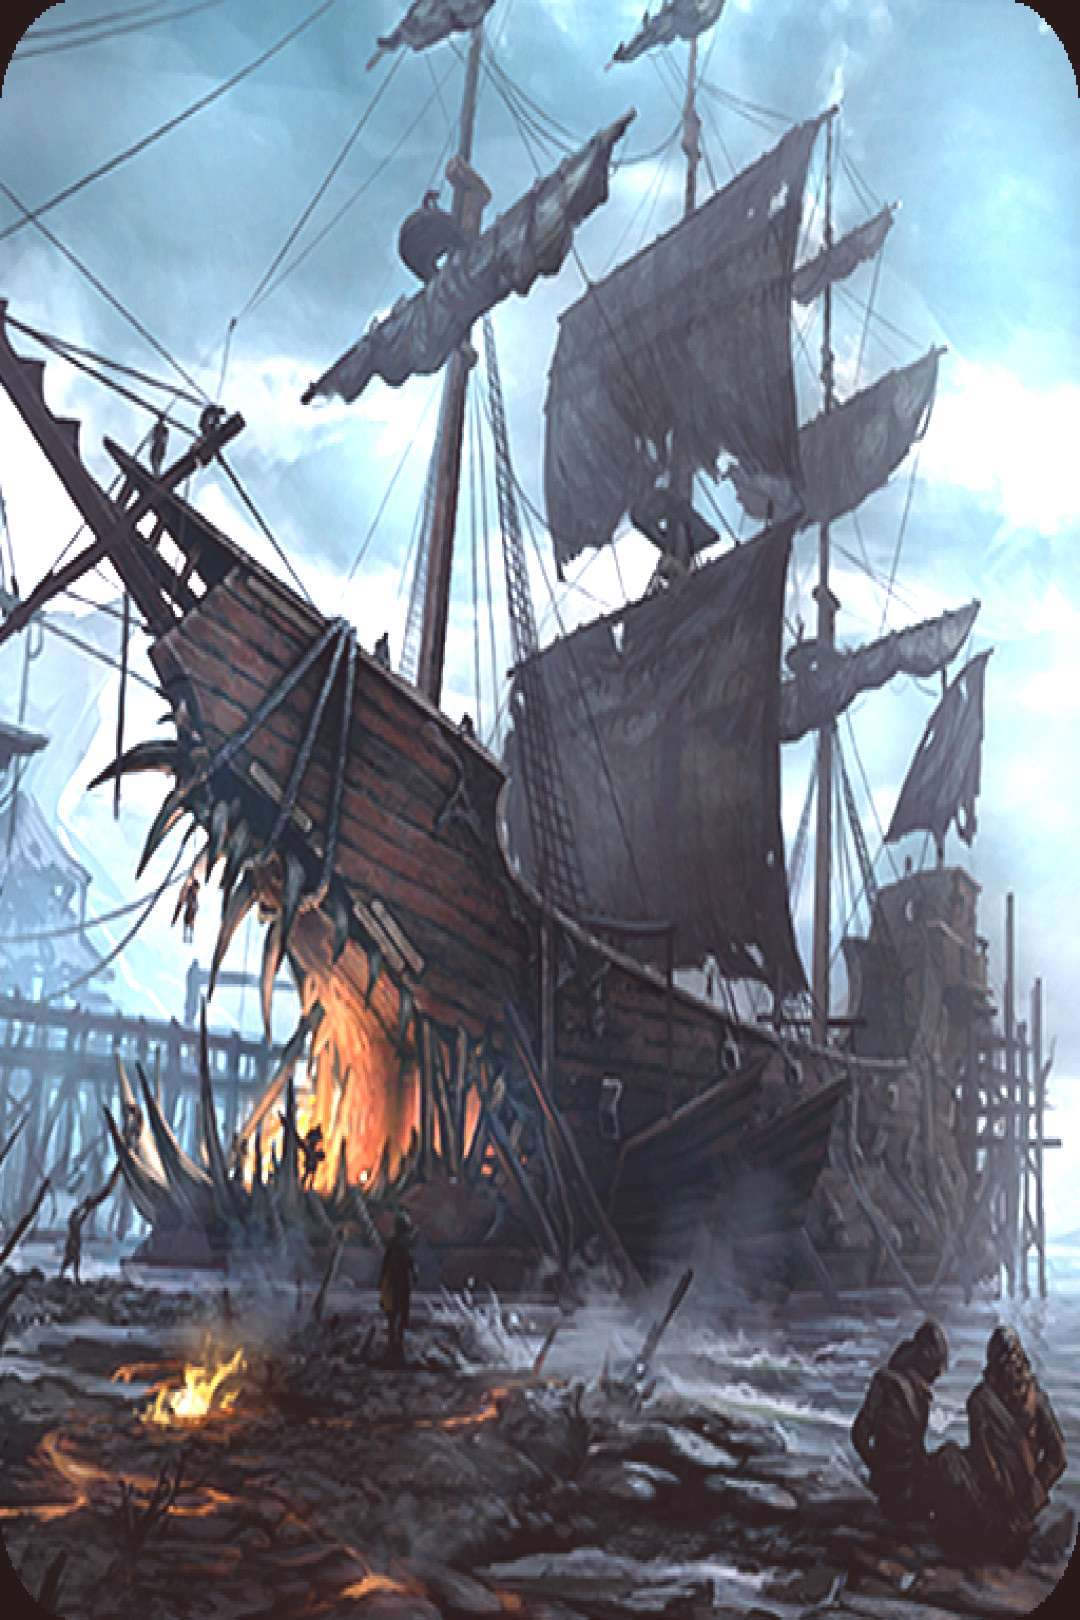 Download Ships of Battle - Age of Pirates - Warship Battle 2.6.25 APK for androidDownload